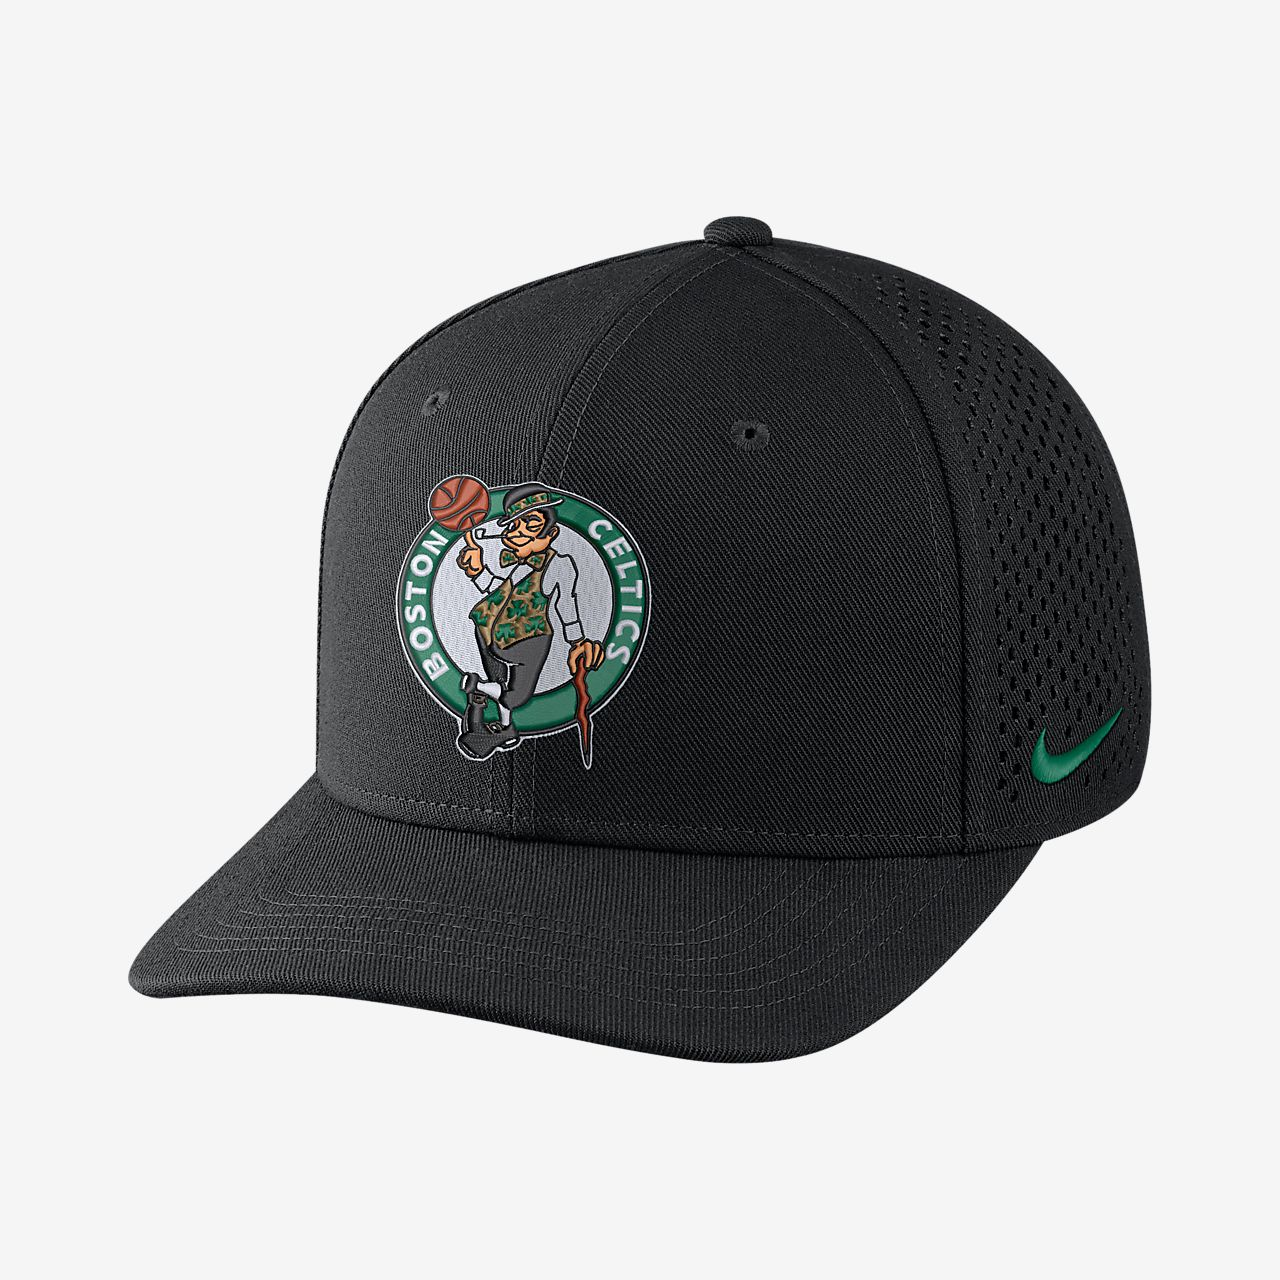 74a53fce Boston Celtics Nike AeroBill Classic99 Unisex Adjustable NBA Hat ...